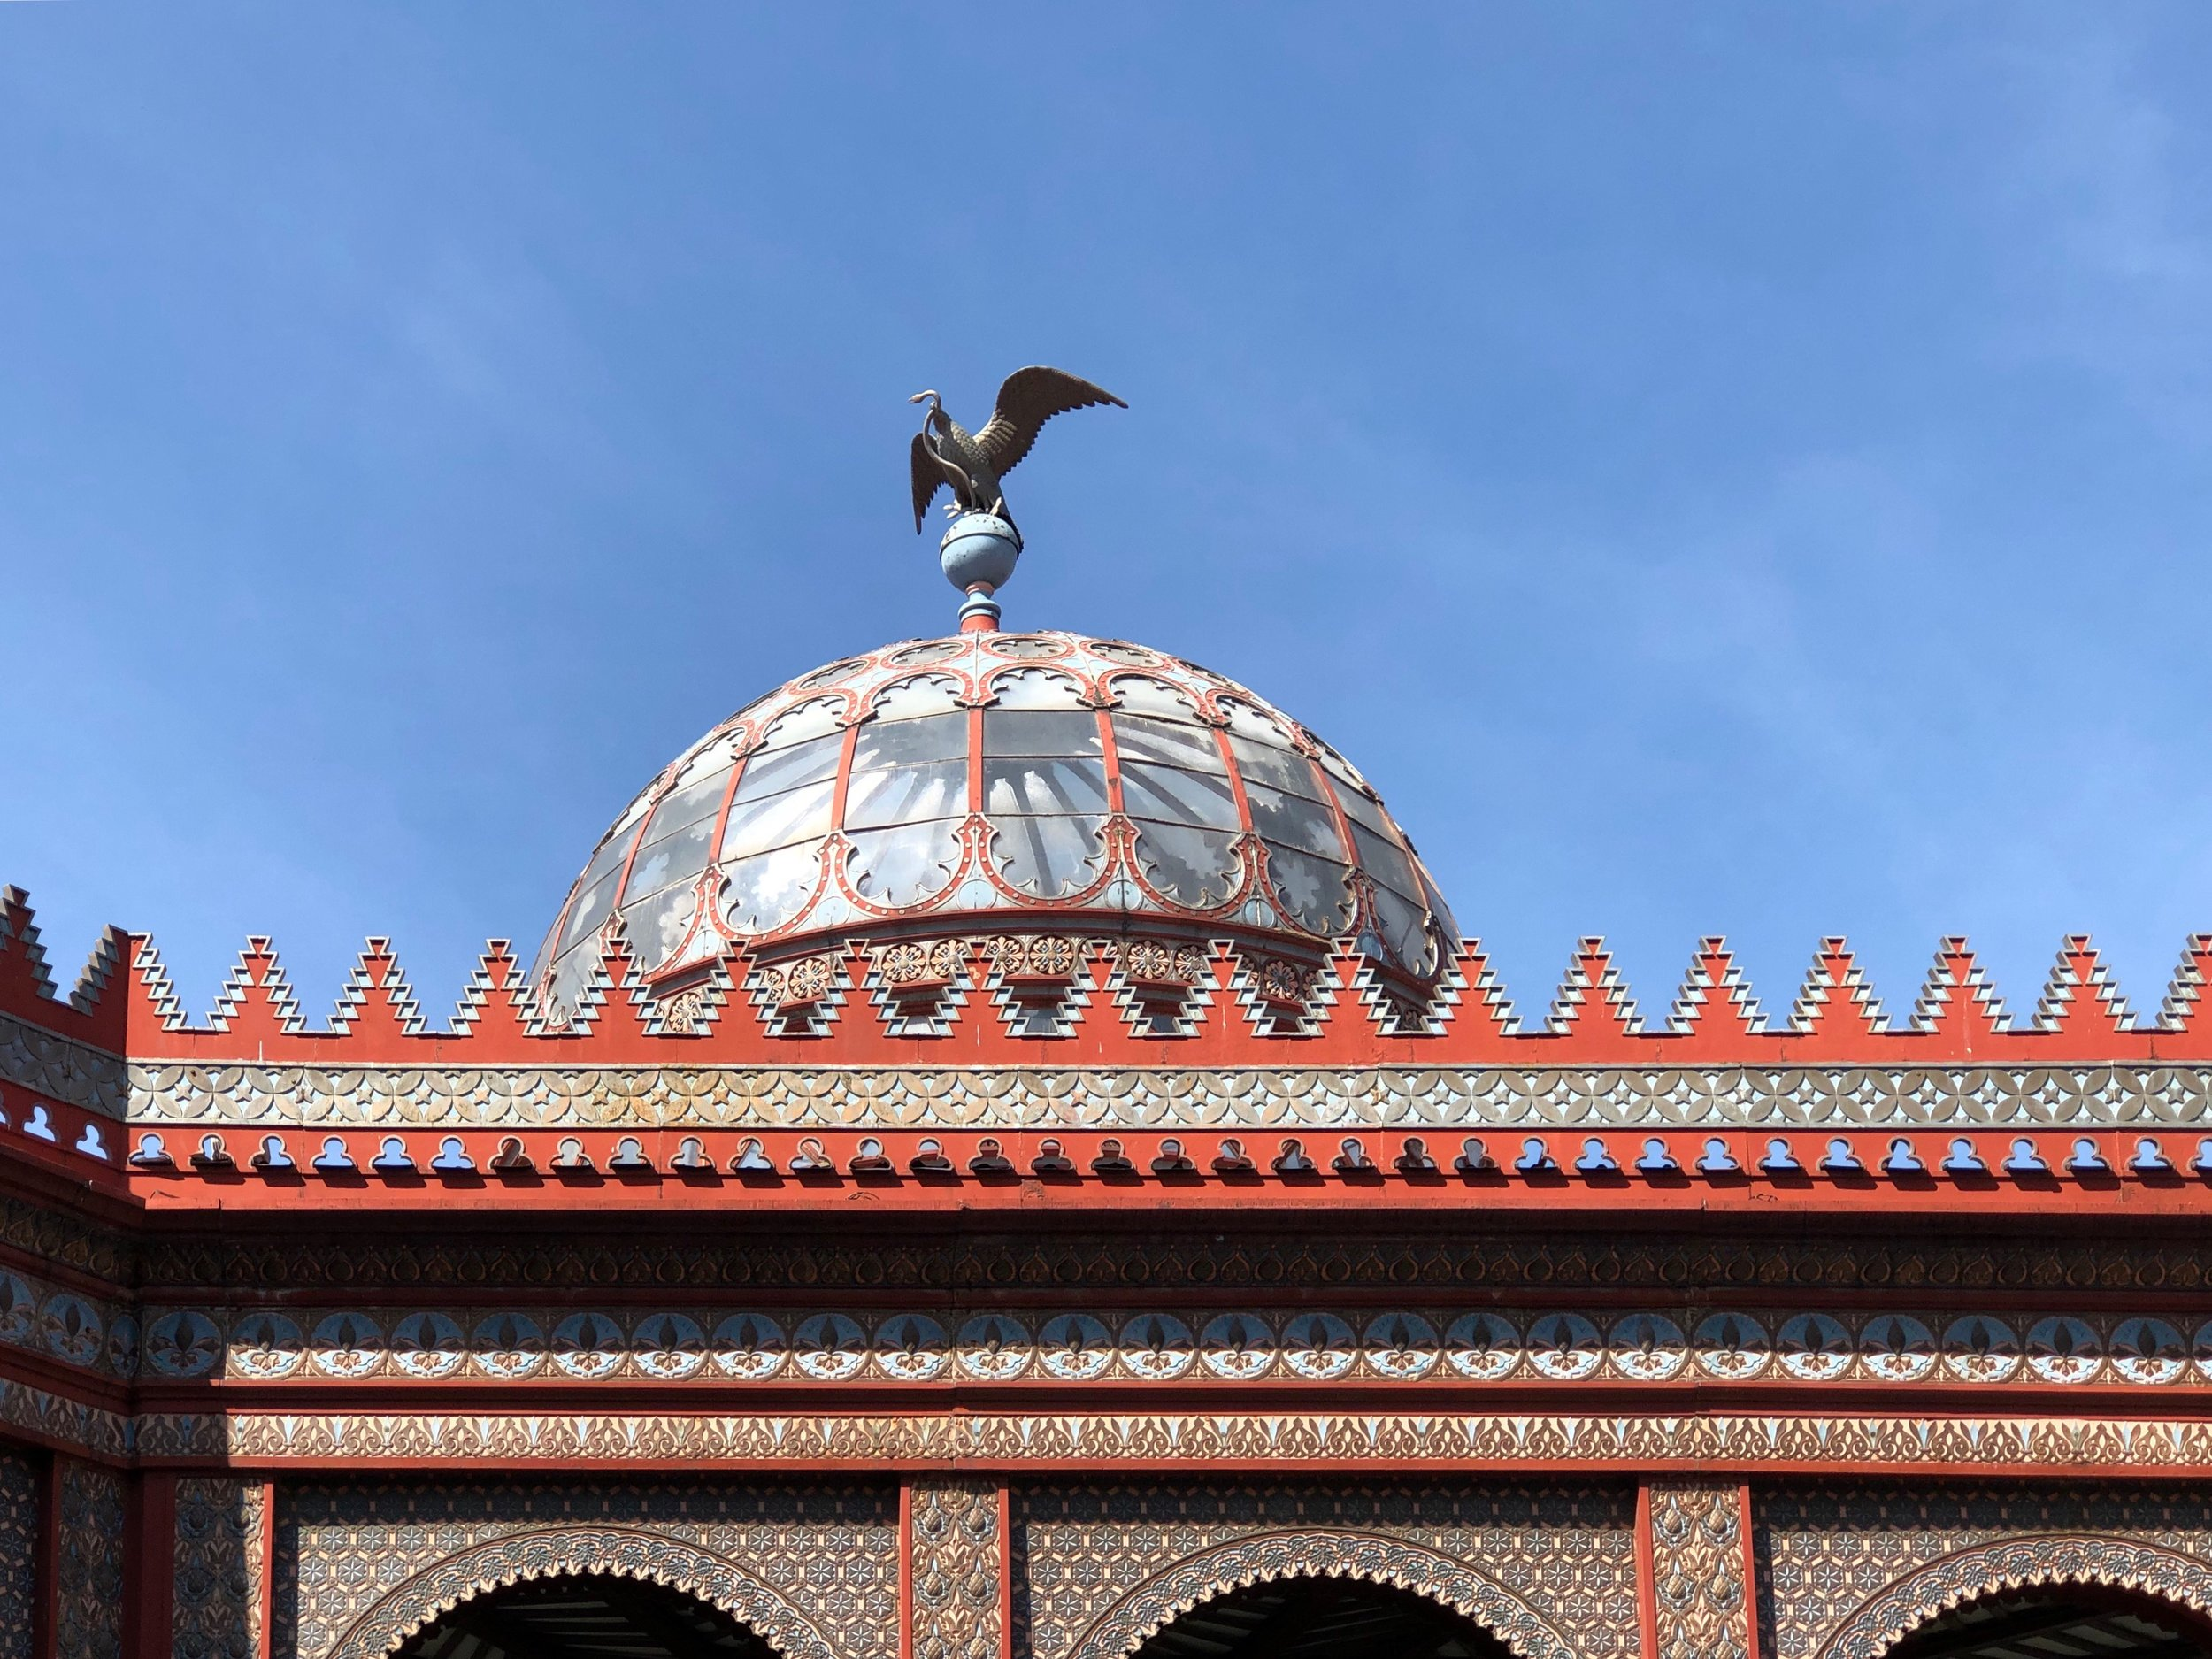 Atop the dome, an eagle attacks a snake — Mexico's national symbol